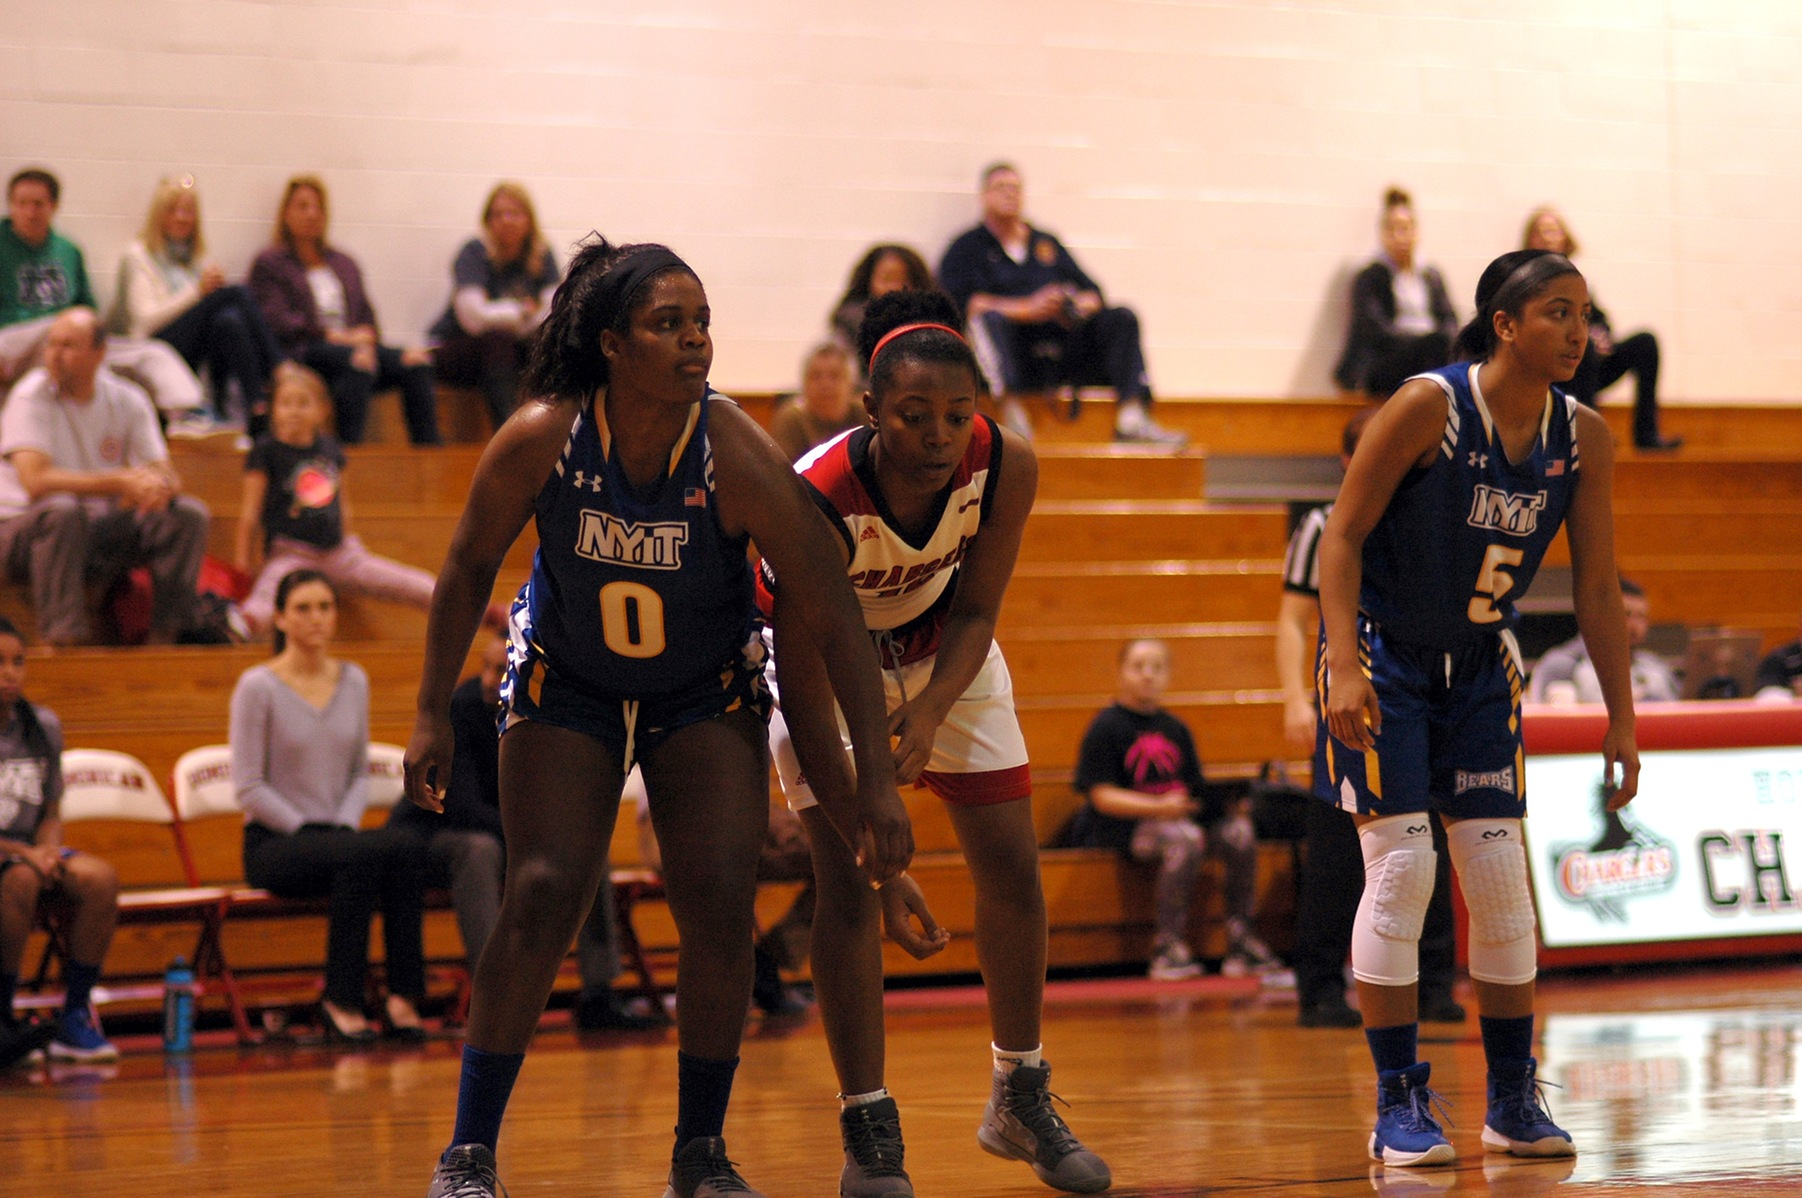 COUGARS GET REVENGE AGAINST LADY CHARGERS